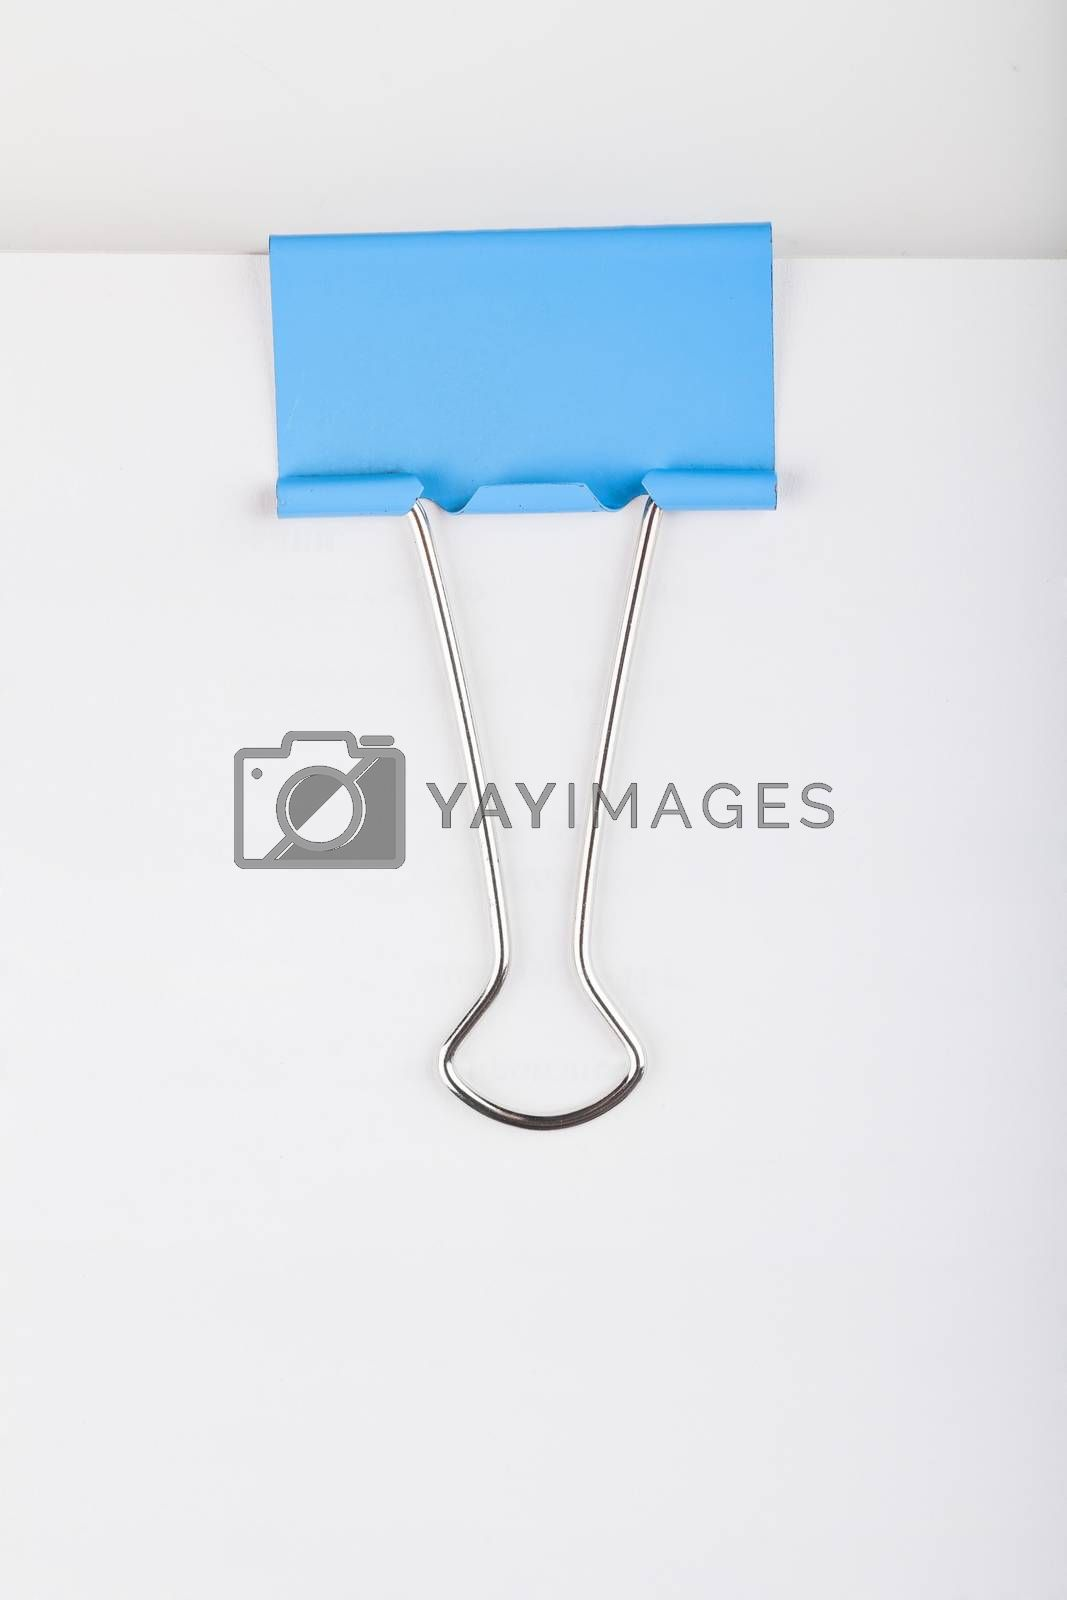 Macro view of blue paper clip on a bunch of paper sheets